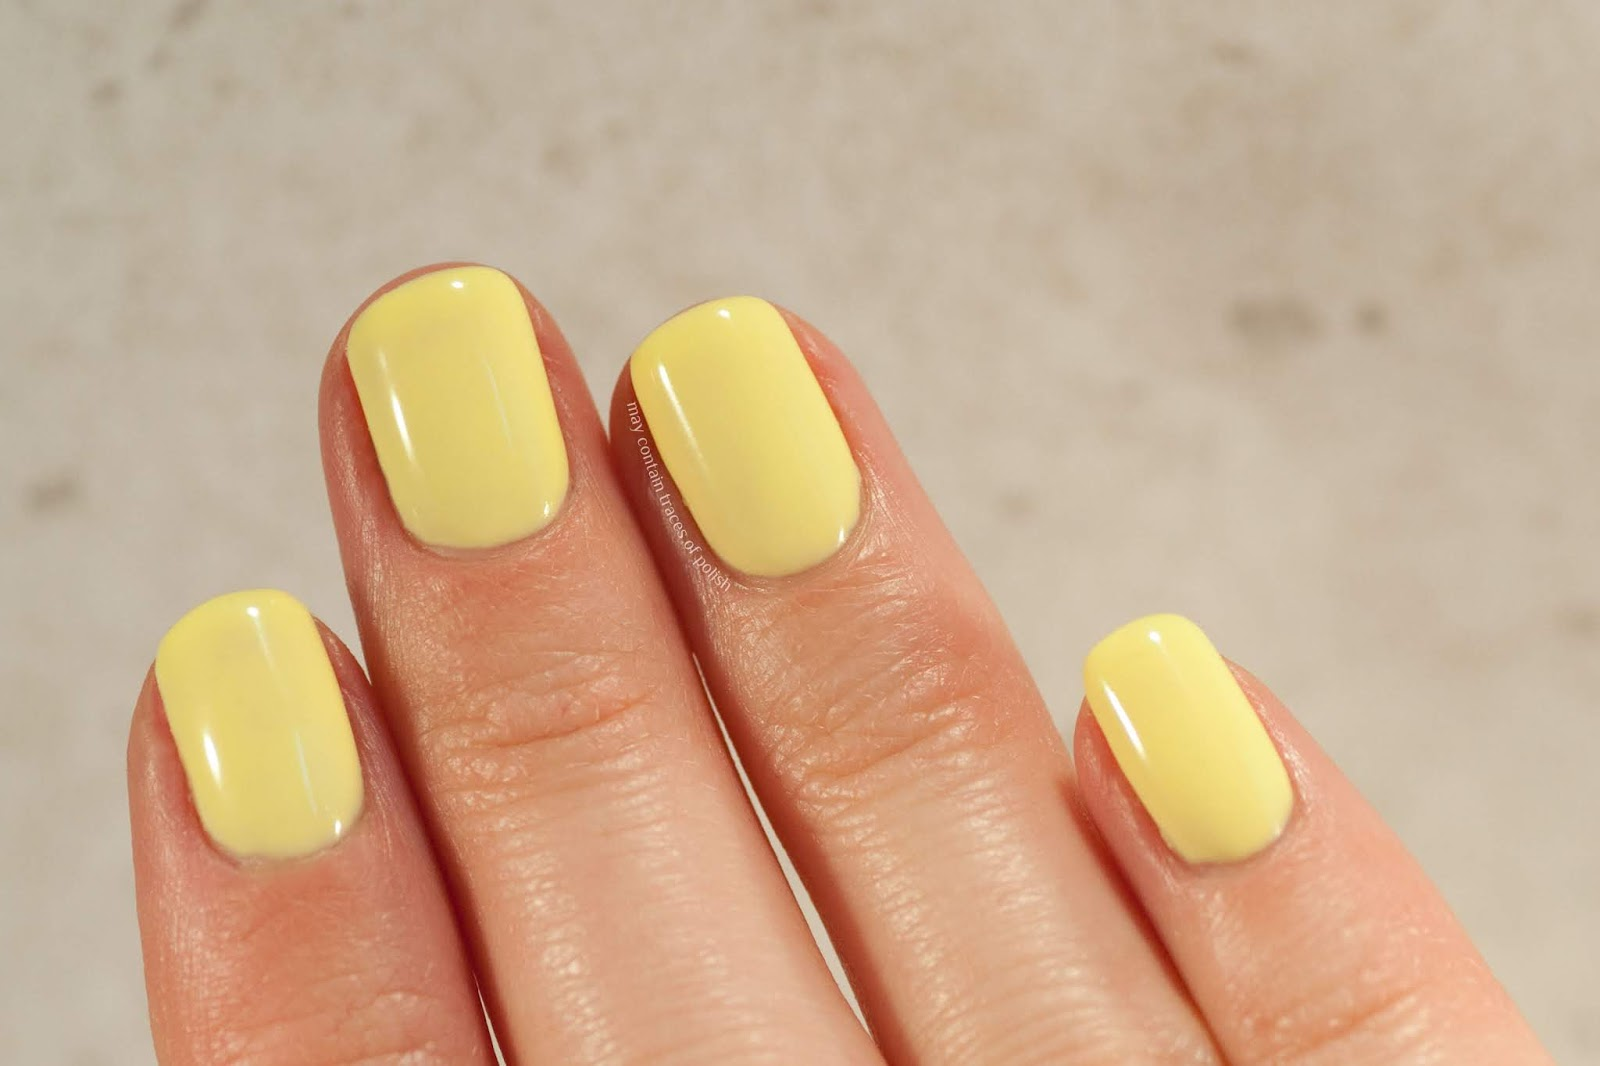 Pink Gellac Swatches - 213 Juicy Yellow